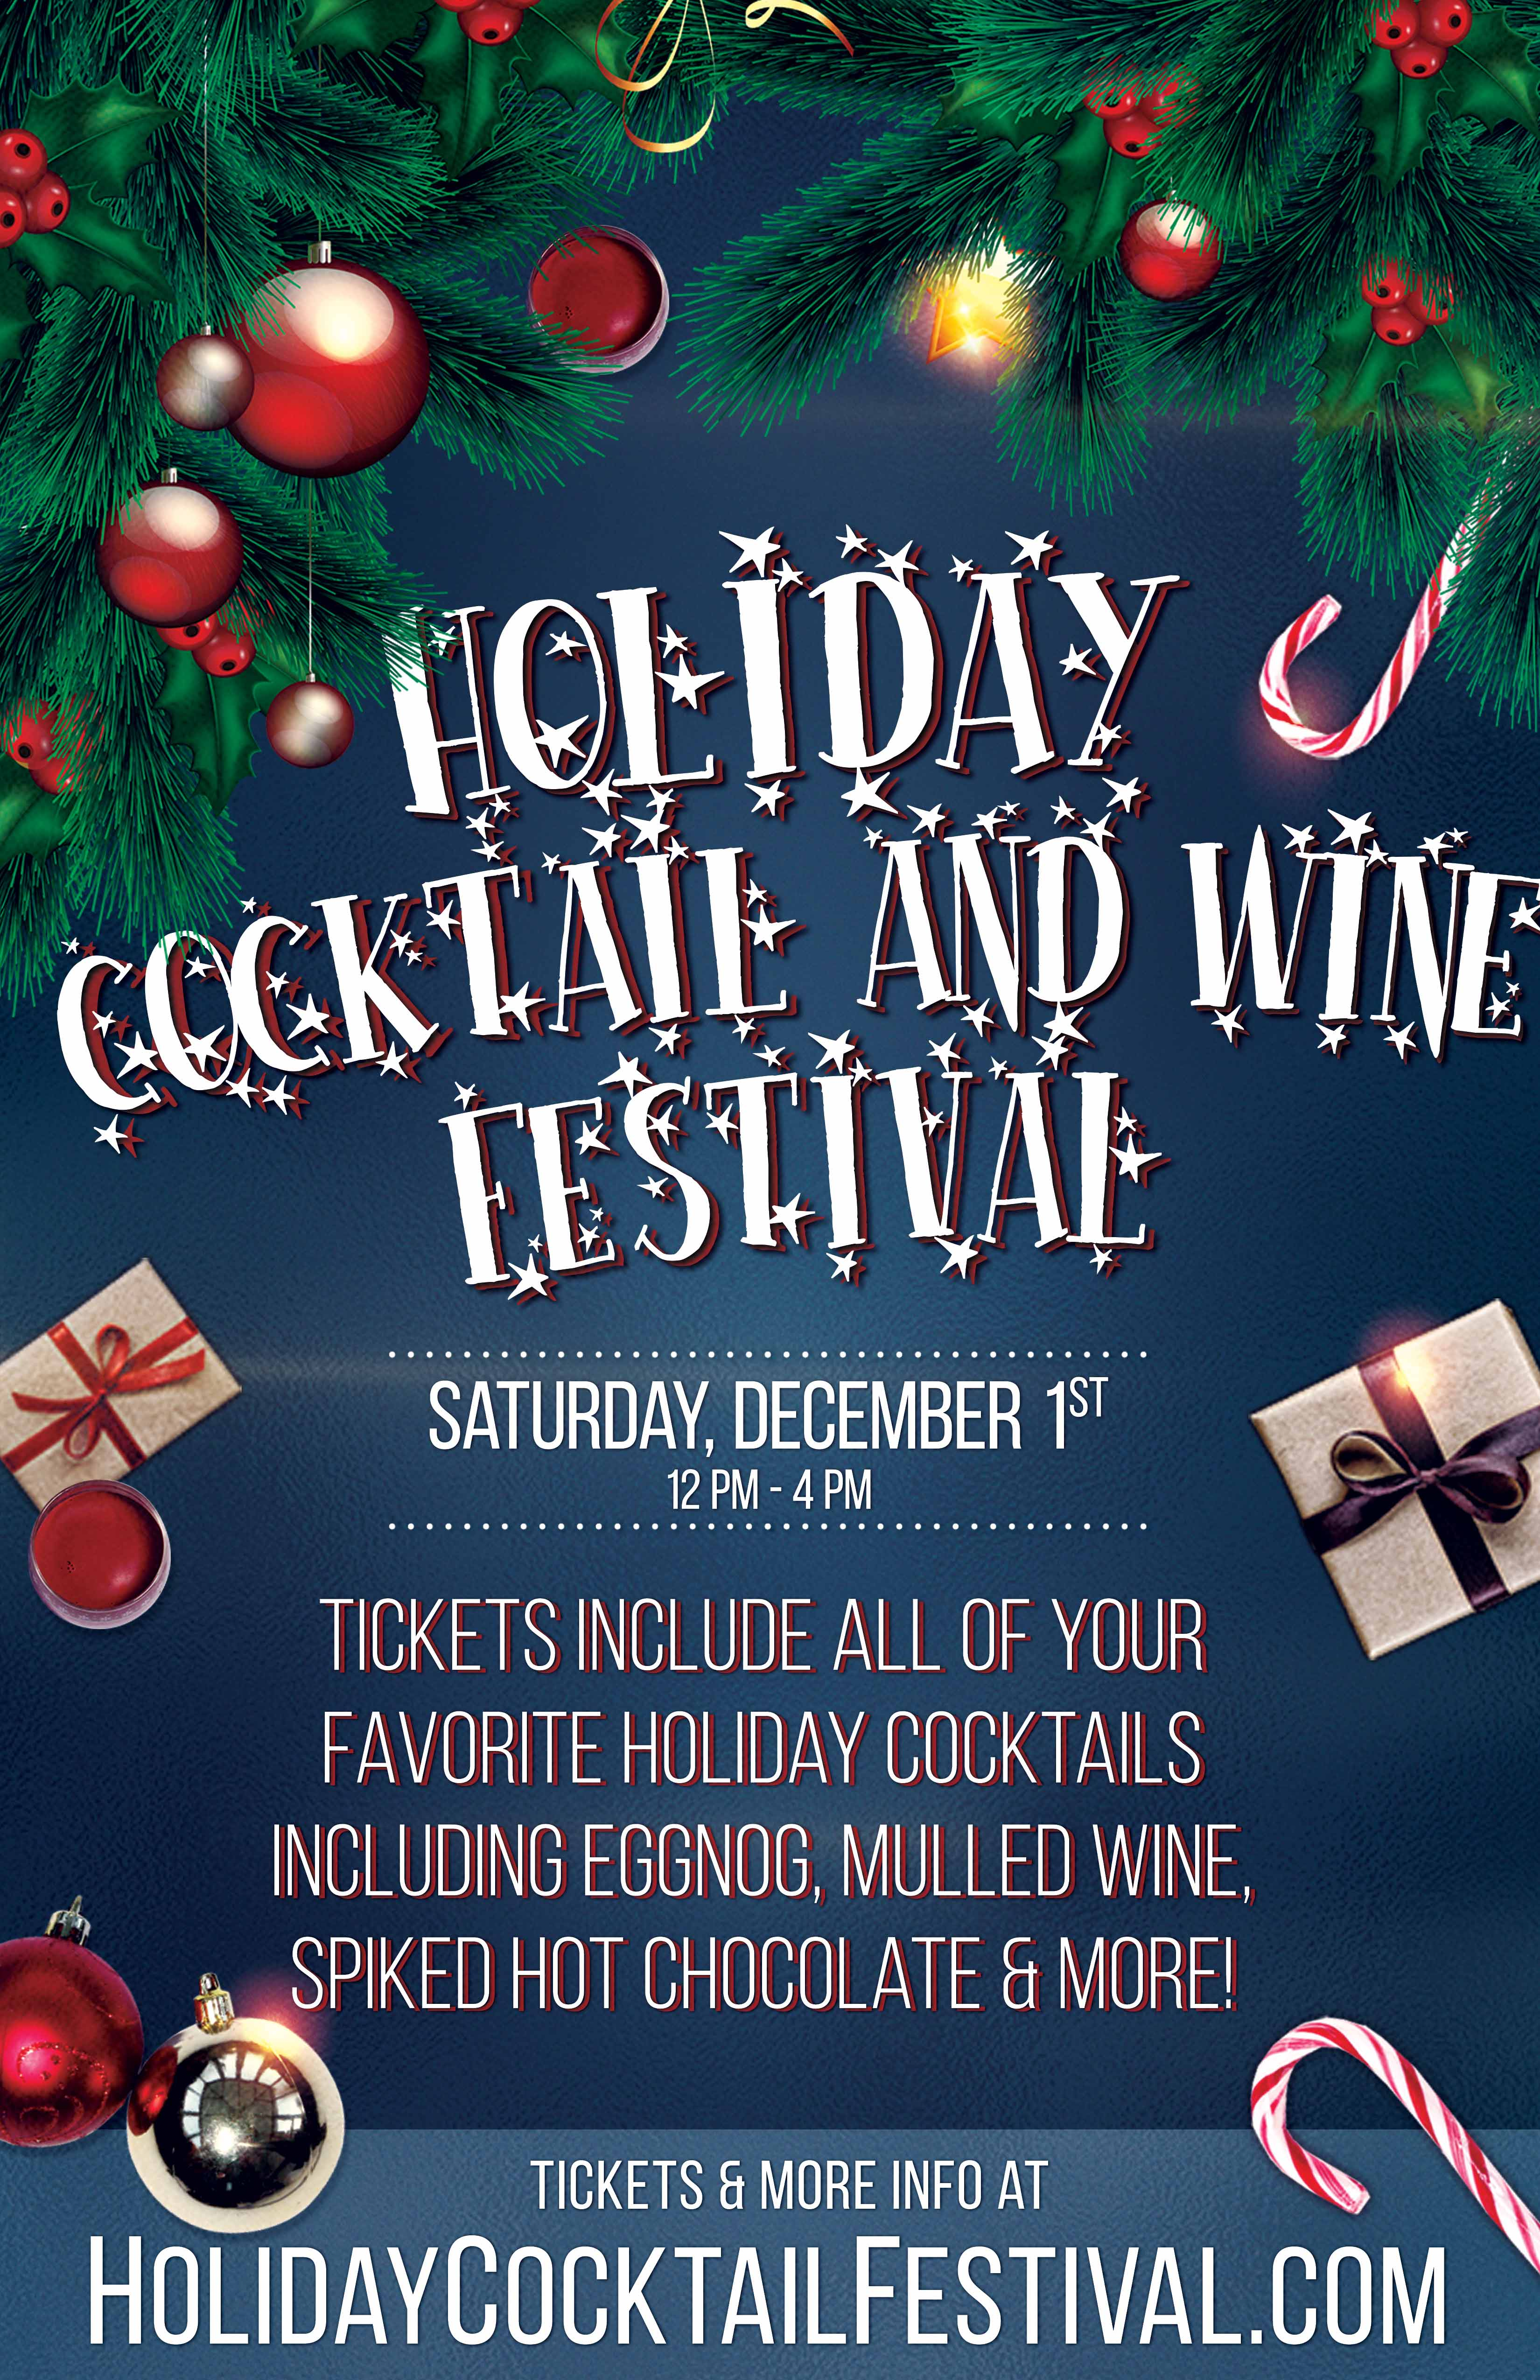 Holiday Cocktail And Wine Festival Party - Tickets include all of your favorite holiday cocktails including: Eggnog, Mulled Wine, Spiked Hot Chocolate, Winter Sangria, Holiday Mules, Jingle Juice, Irish Coffee, Winter Mimosas and MORE!